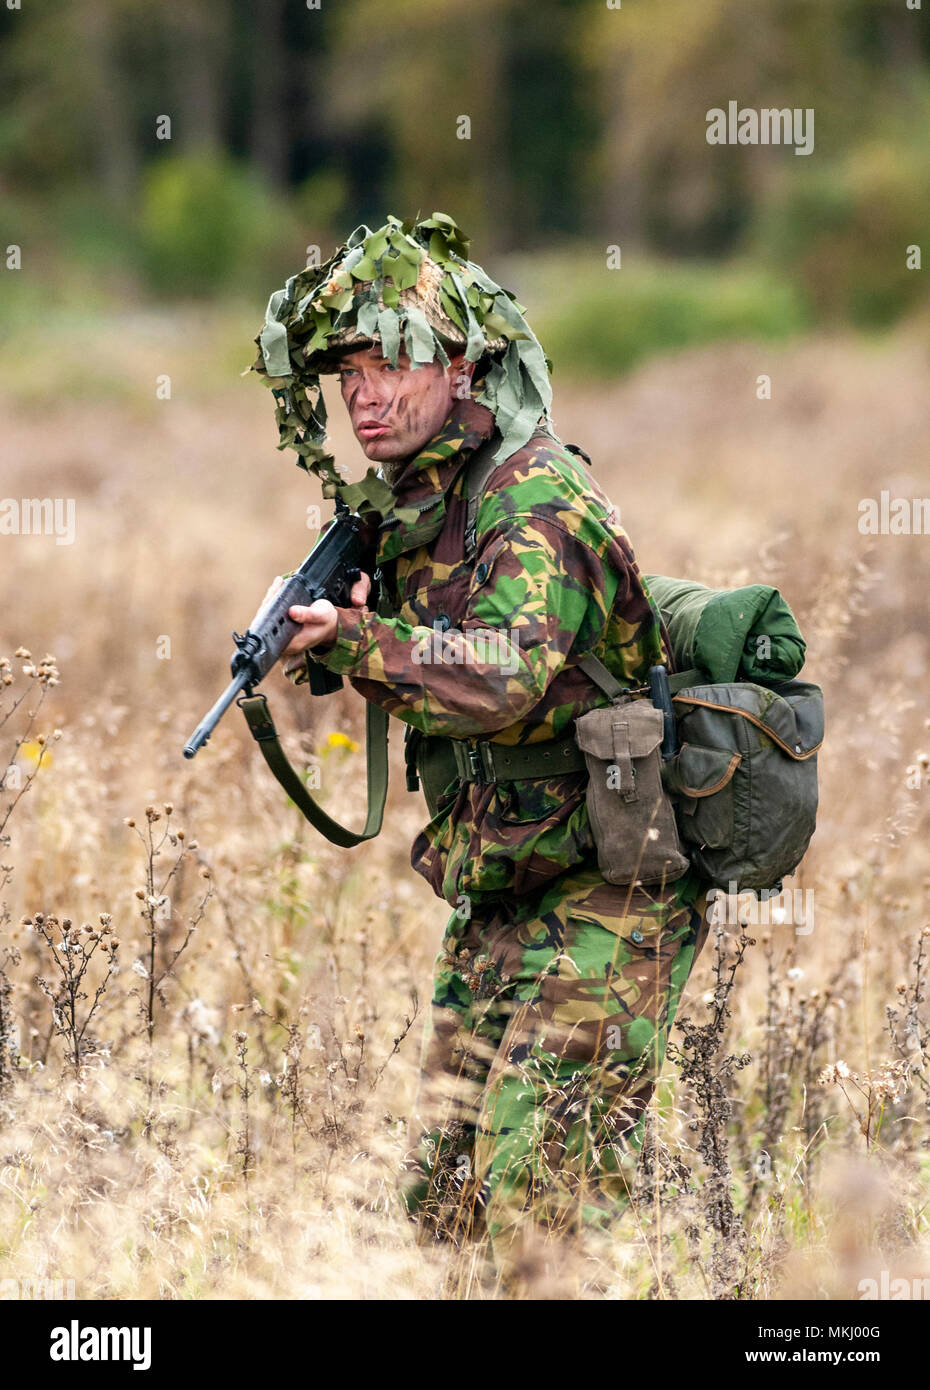 1970 – 1980 British Army soldier in camouflage suit and steel helmet carrying a SLR (Self-Loading Rifle) L1A1 - calibre of 7.62 mm (Posed by Model) - Stock Image